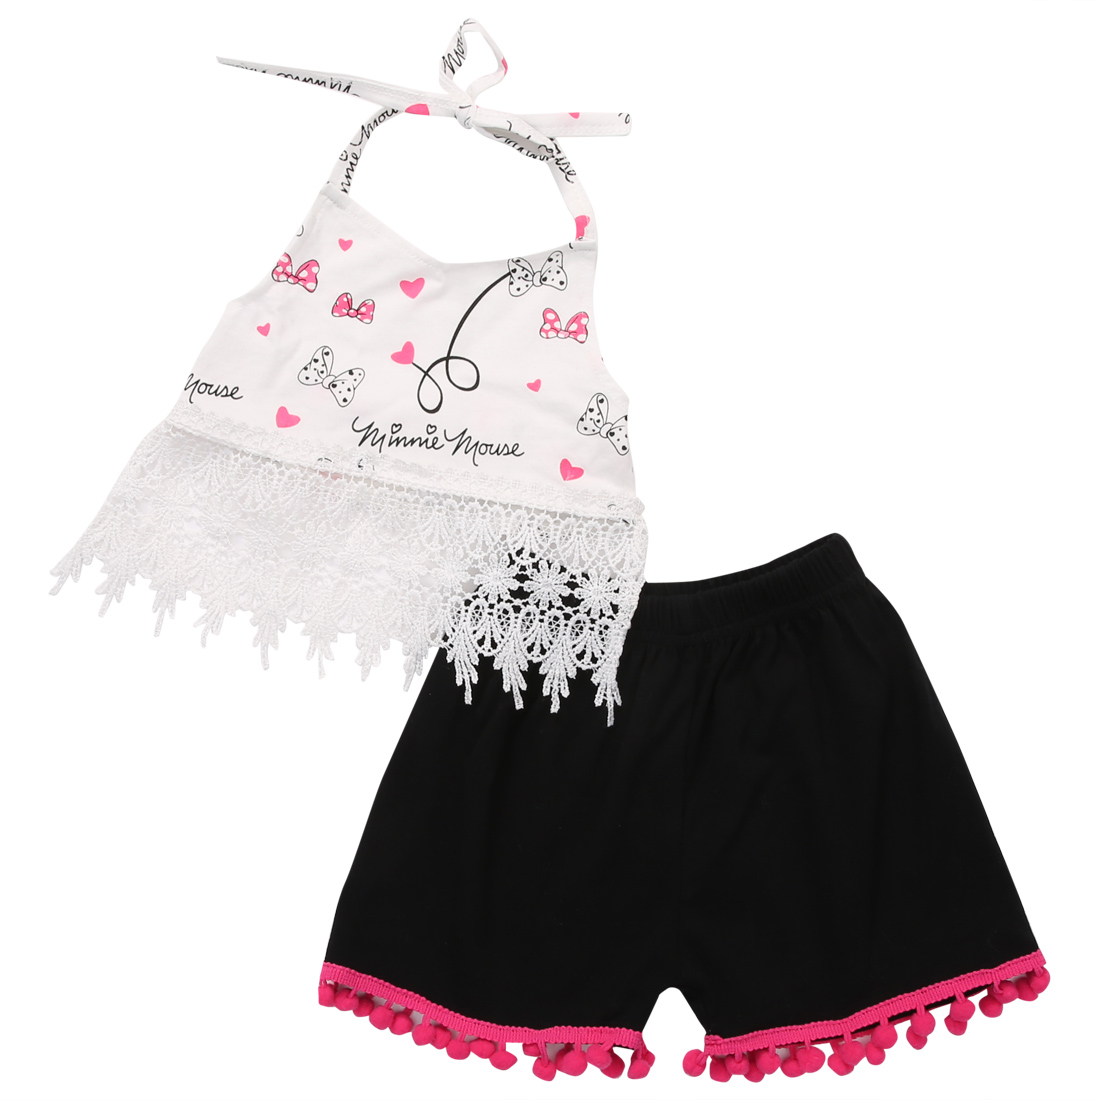 2PCS Newborn Baby Girl Clothes 2017 Summer Lace Crop Top Tanks +Tassel Hot Pant Outfit Kids Girls Clothing Set Bebek Giyim 0-24M 2016 new casual baby girl clothes 2pcs autumn clothing set floral hooded top pant outfits newborn bebek giyim 0 24m